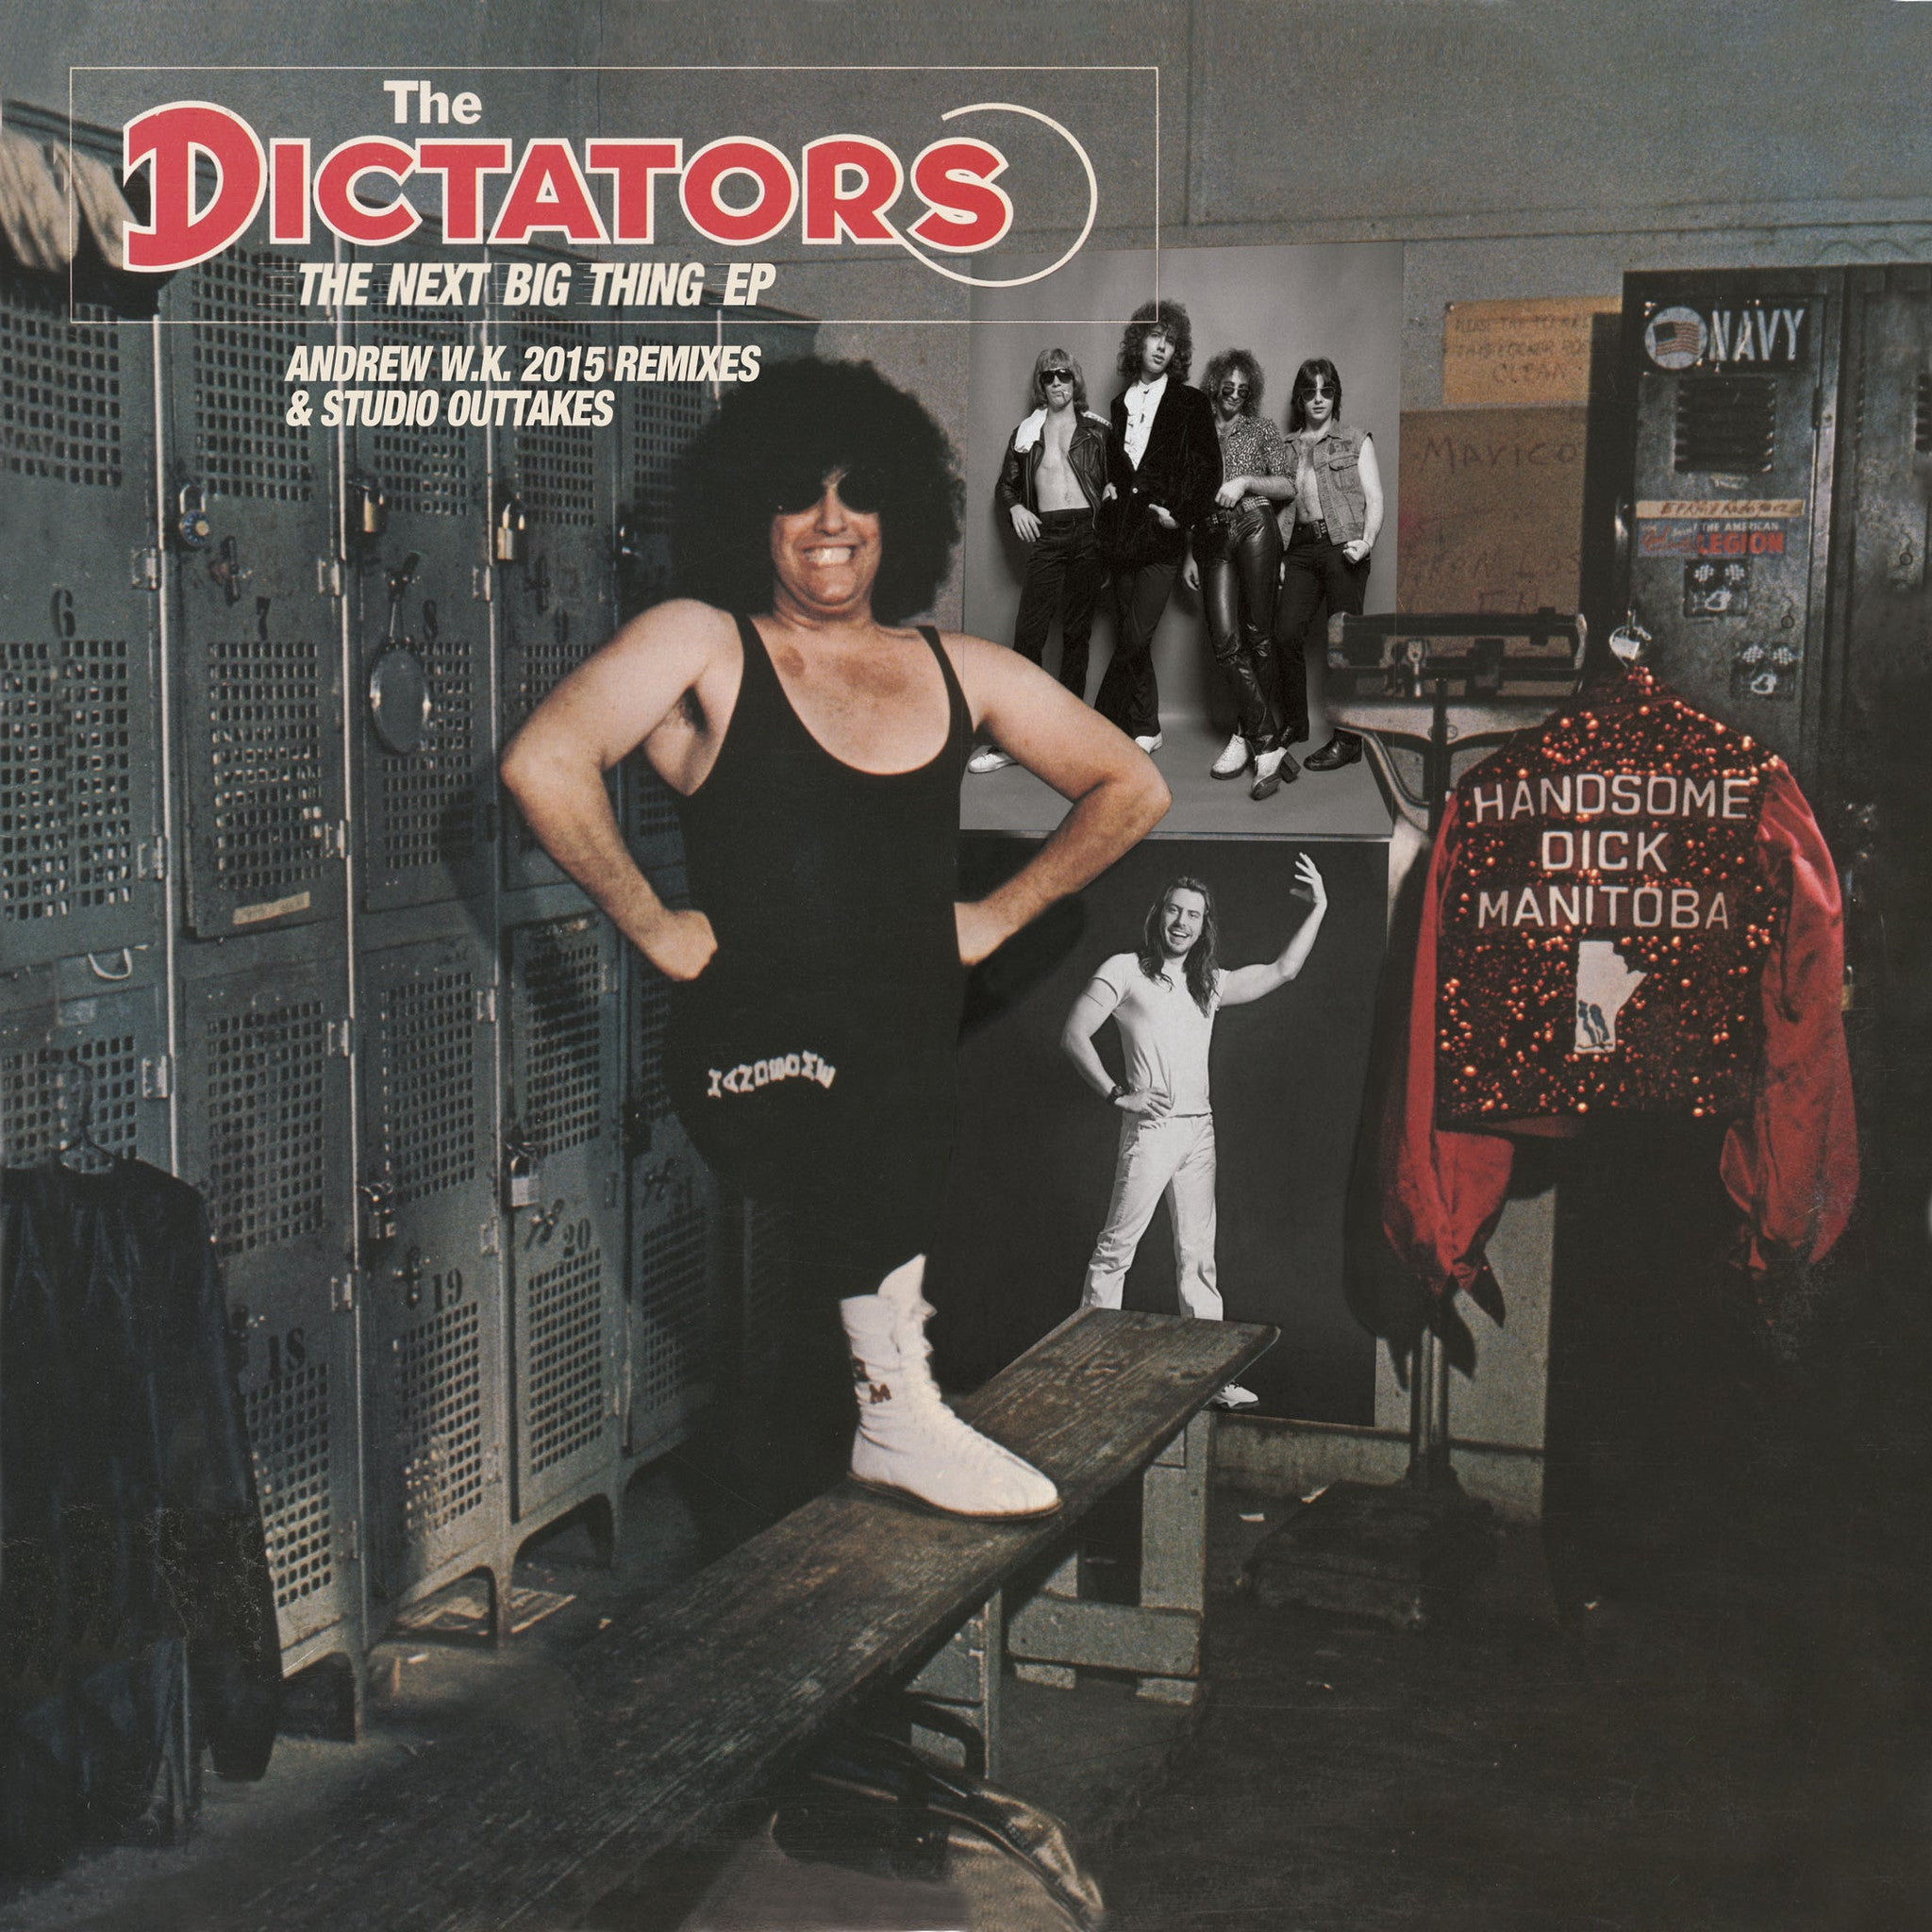 Dictators - The Next Big Thing EP (Black Friday RSD 2105)